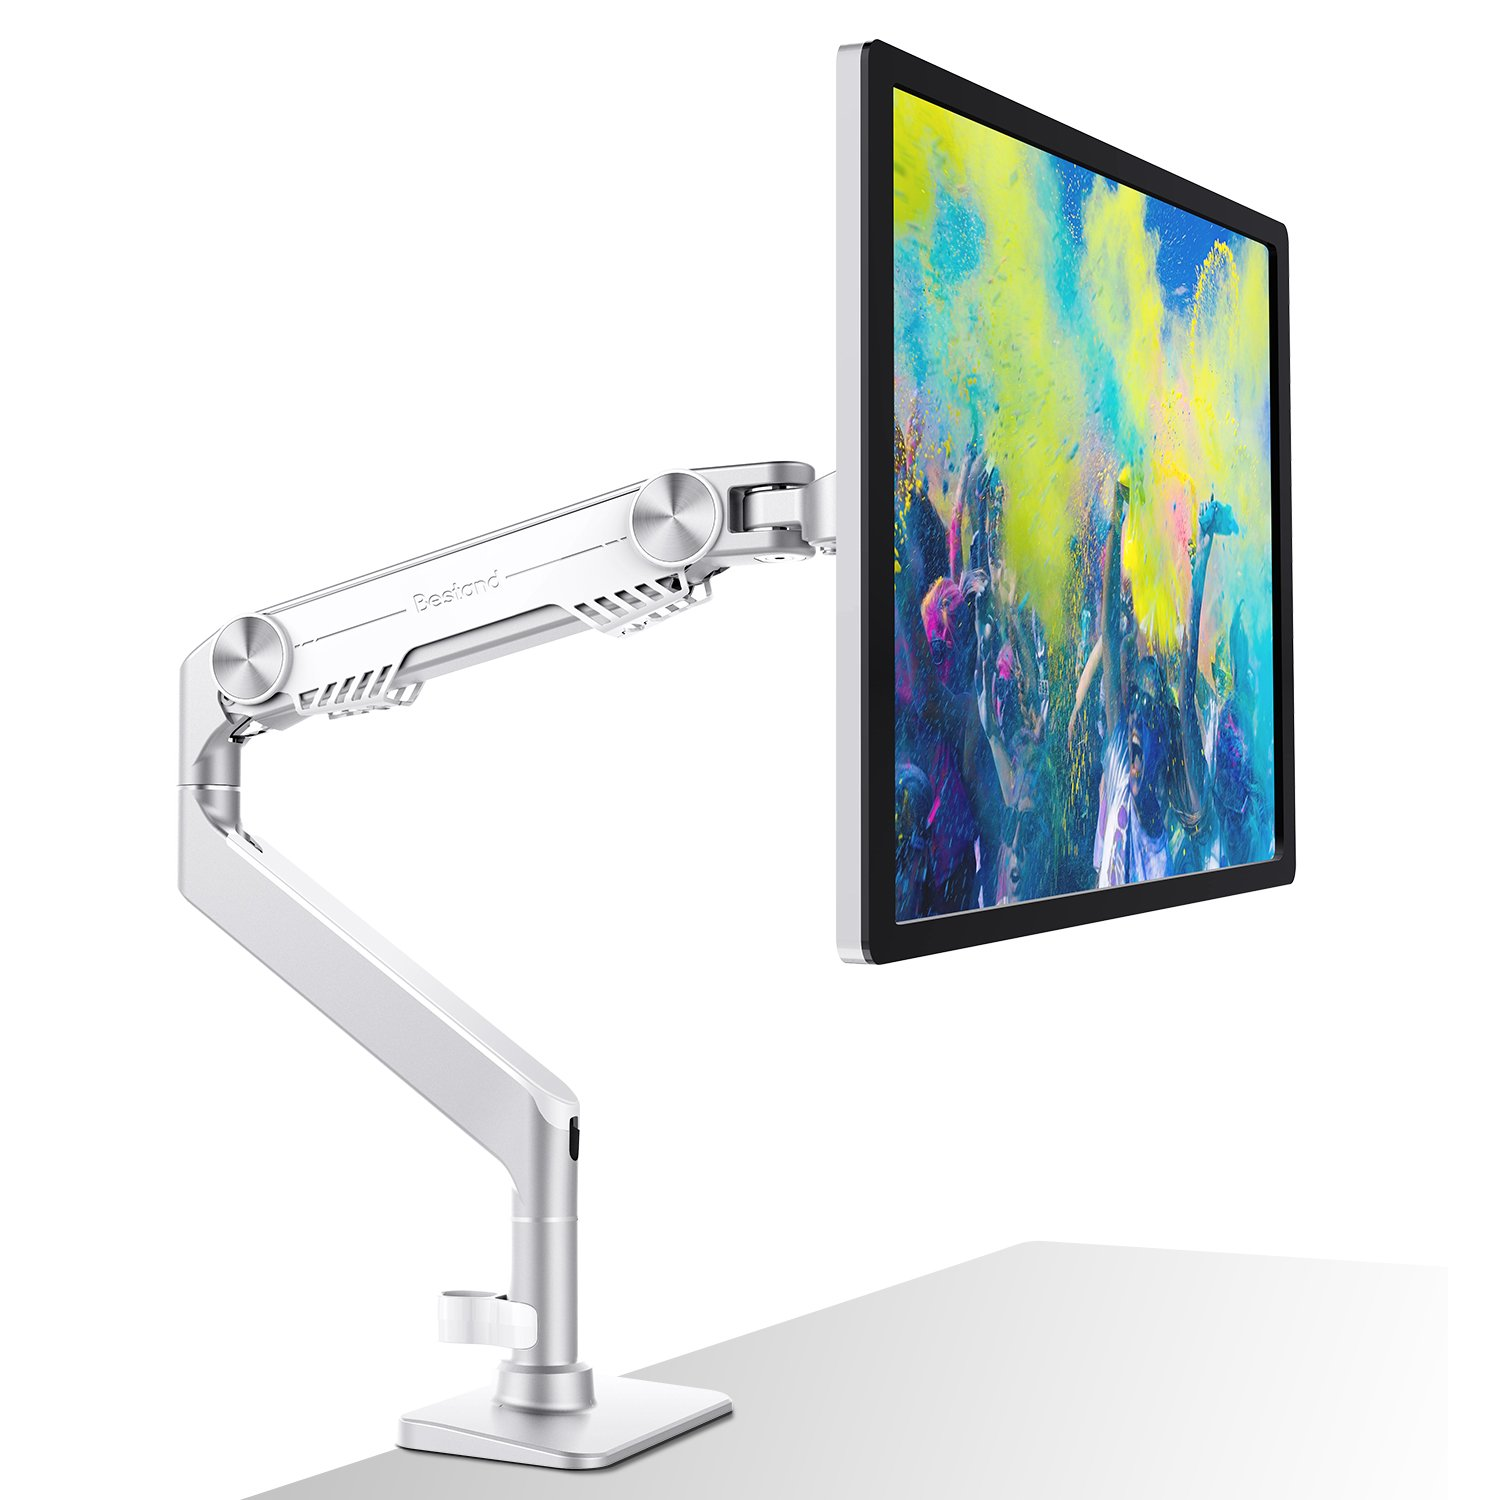 Bestand Monitor Wall Mount Monitor Stand LCD Screen Gas Spring Single Monitor Arm-Aluminum Lift Engine Arm Mount, Grey S3-Grey